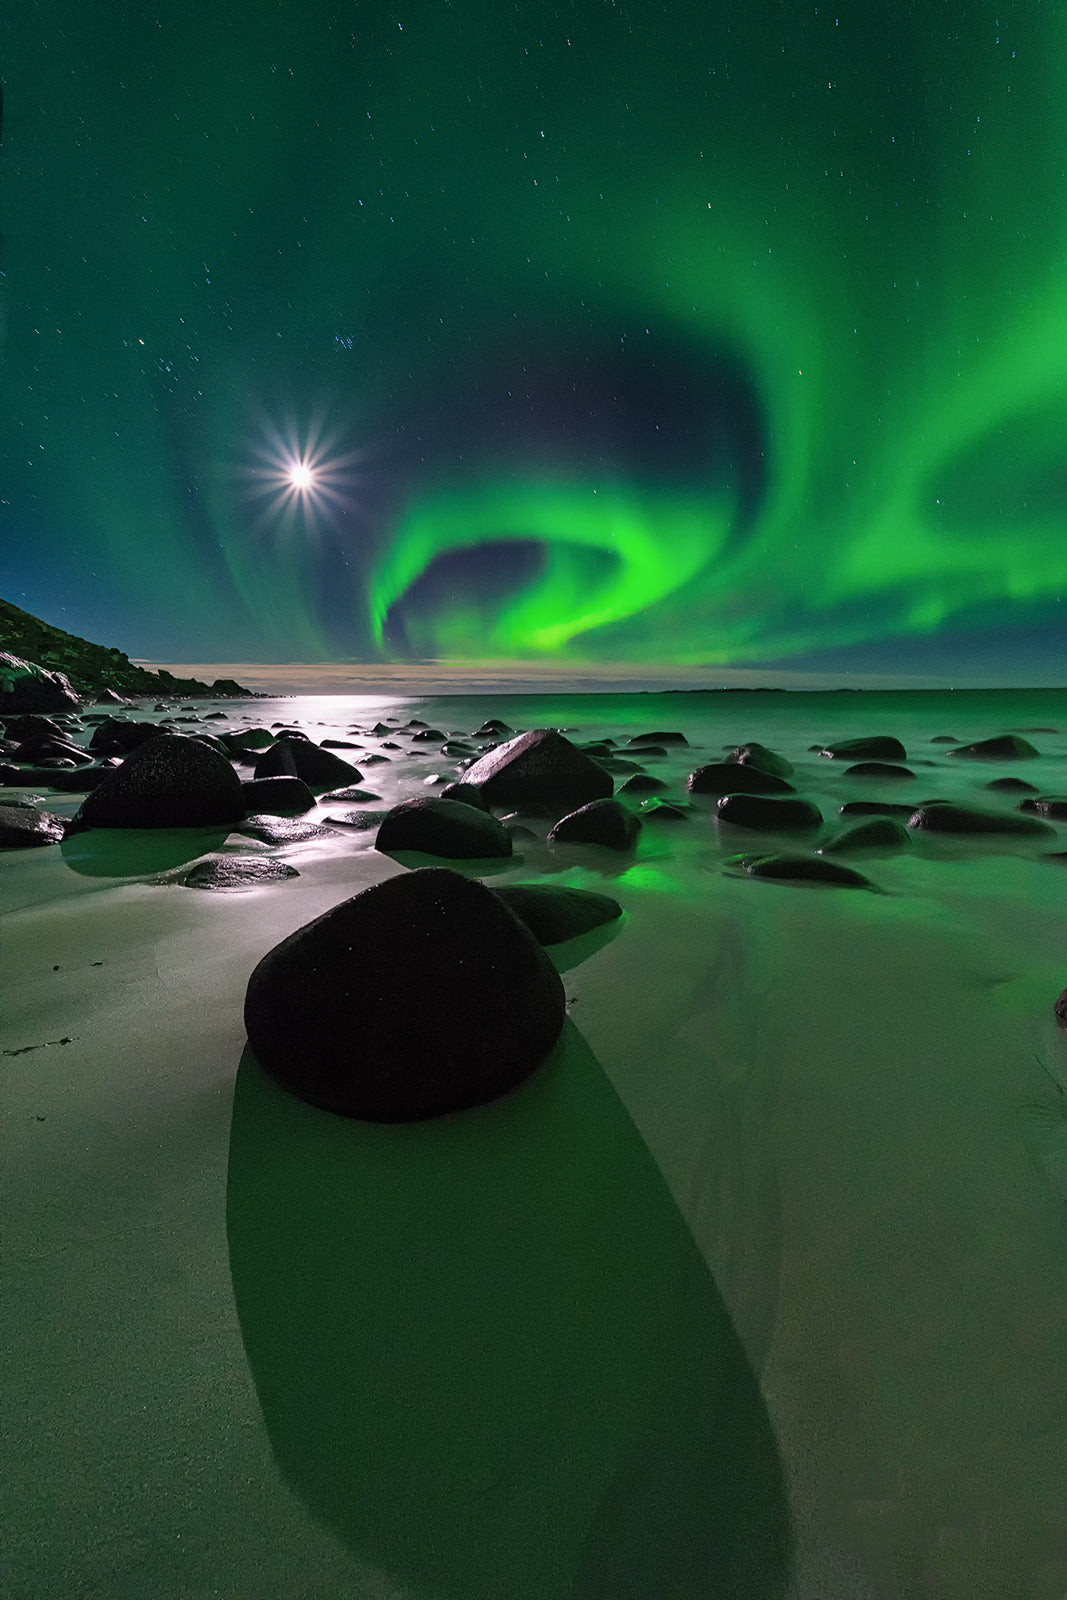 Northern lights in Iceland (pedro kin)